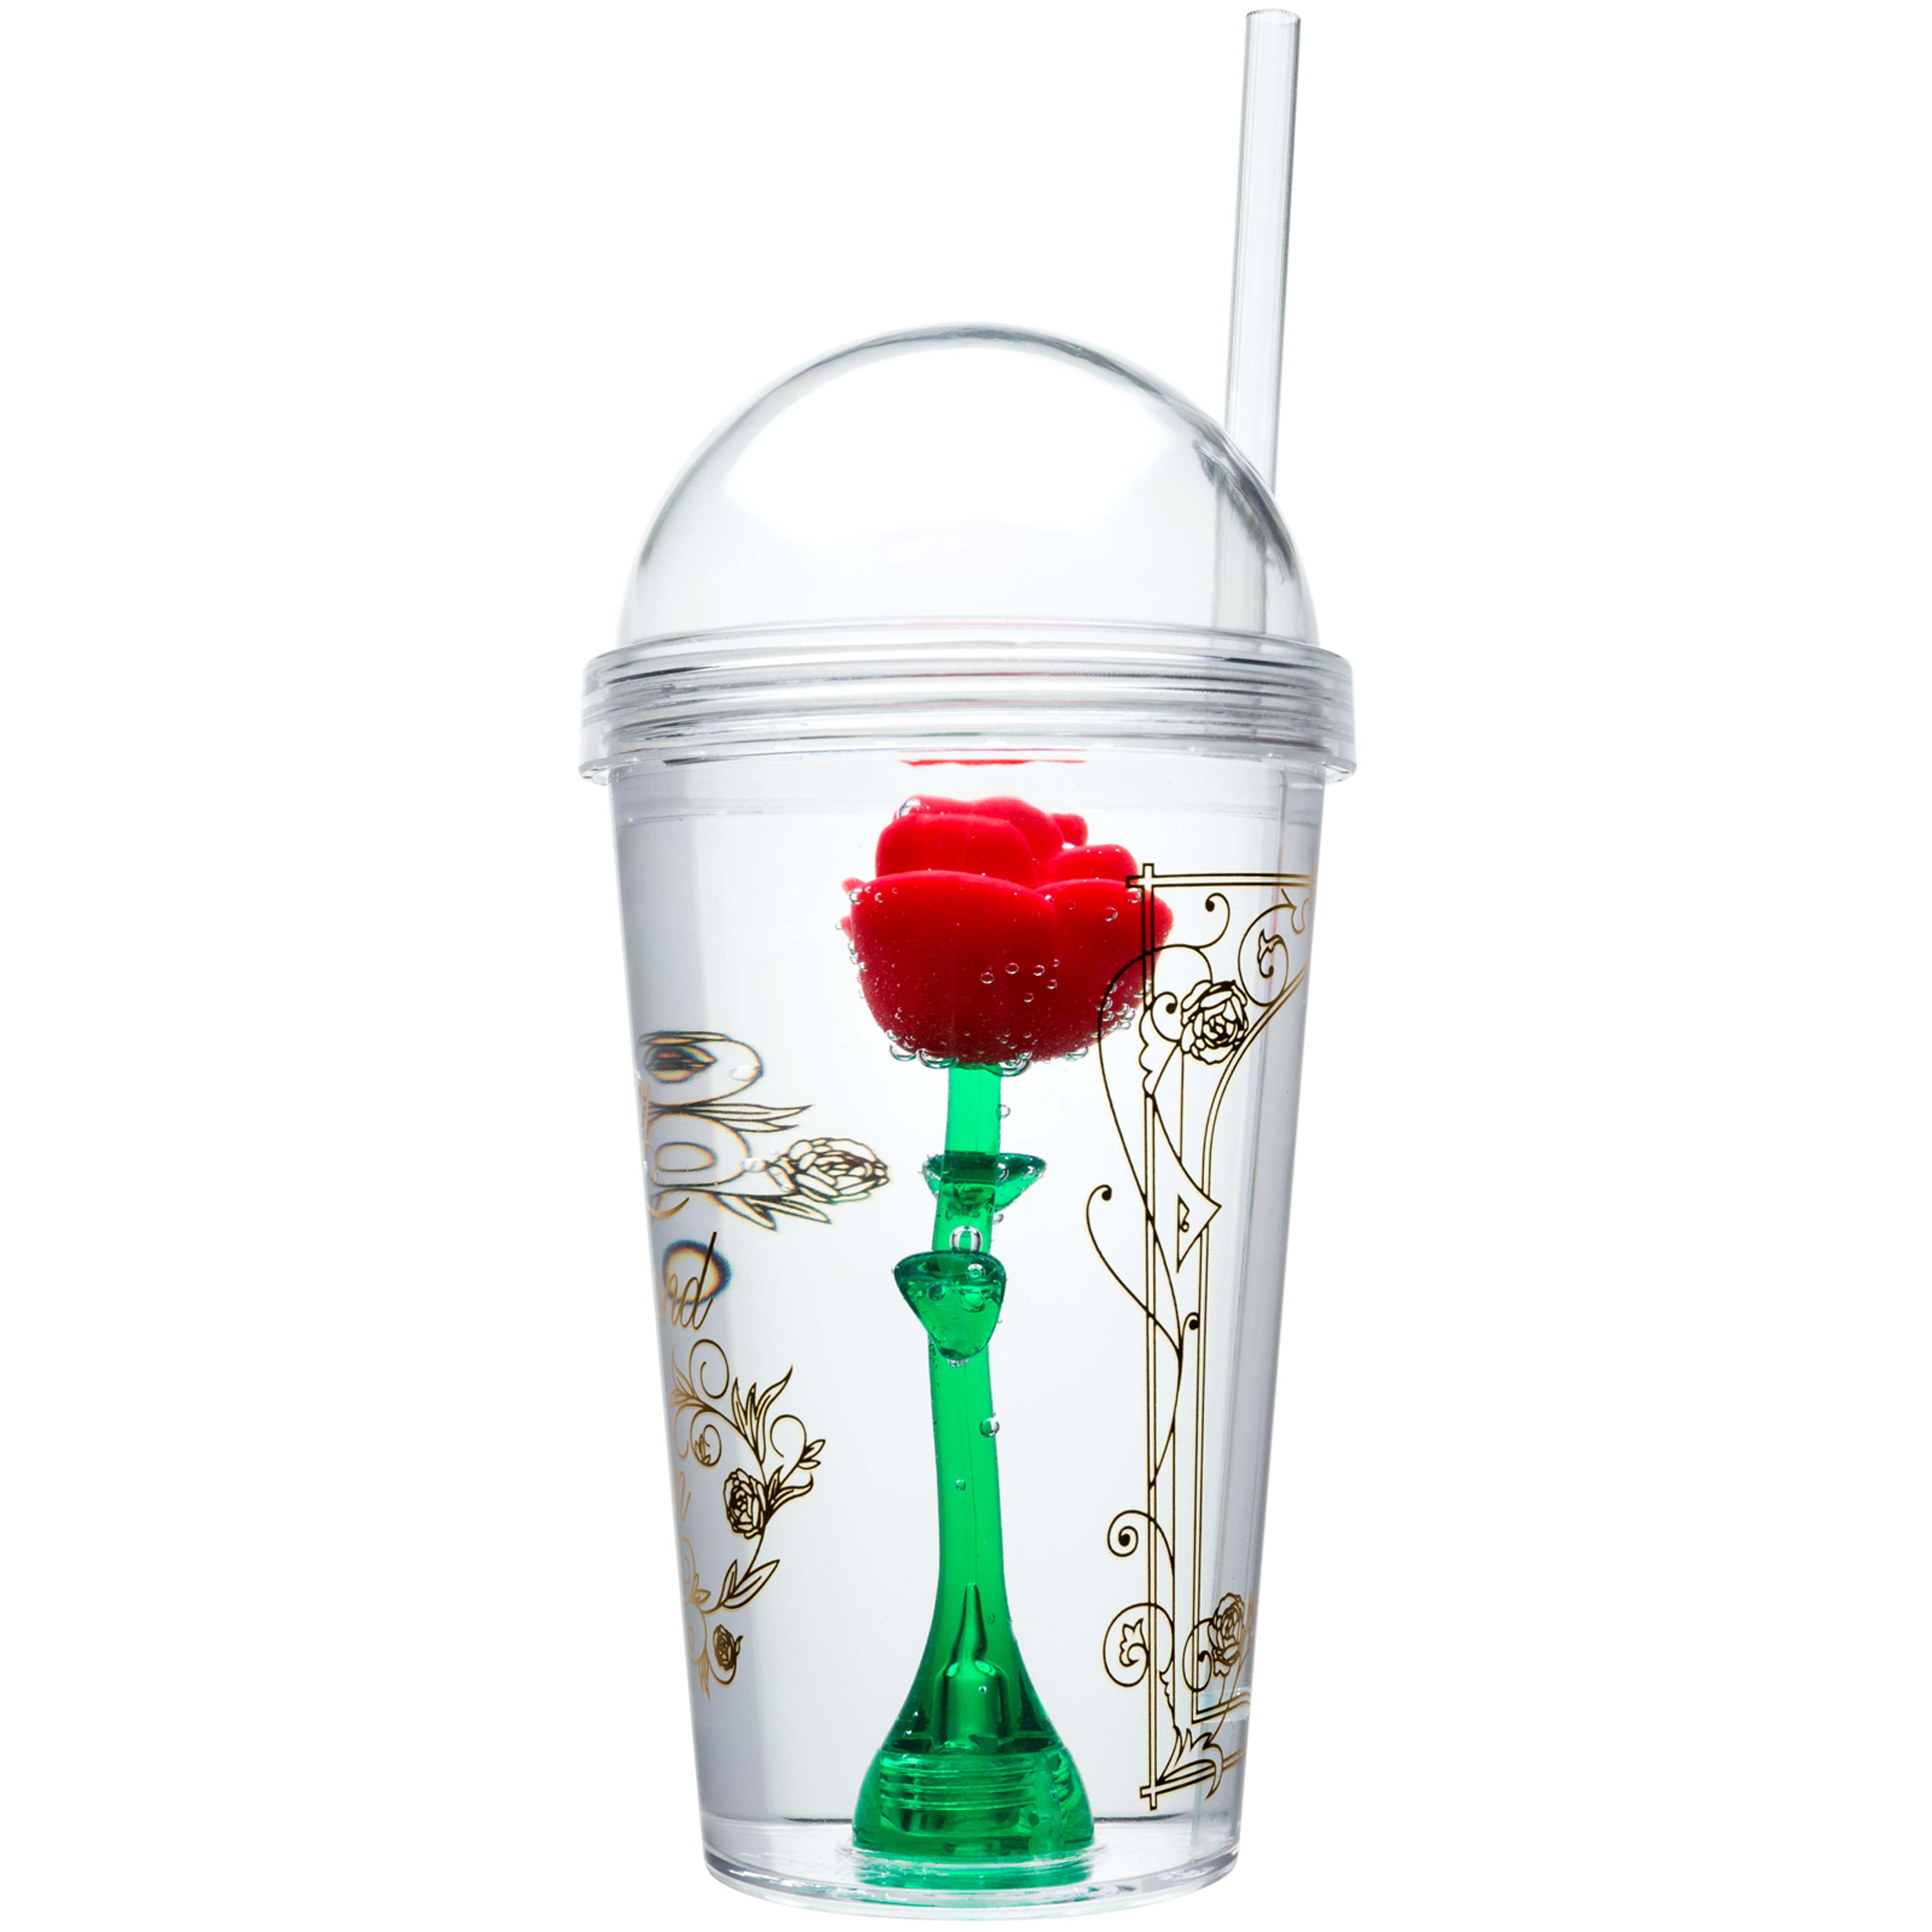 Beauty And The Beast 22 ounce Kid's Tumbler, Enchanted Rose slideshow image 4